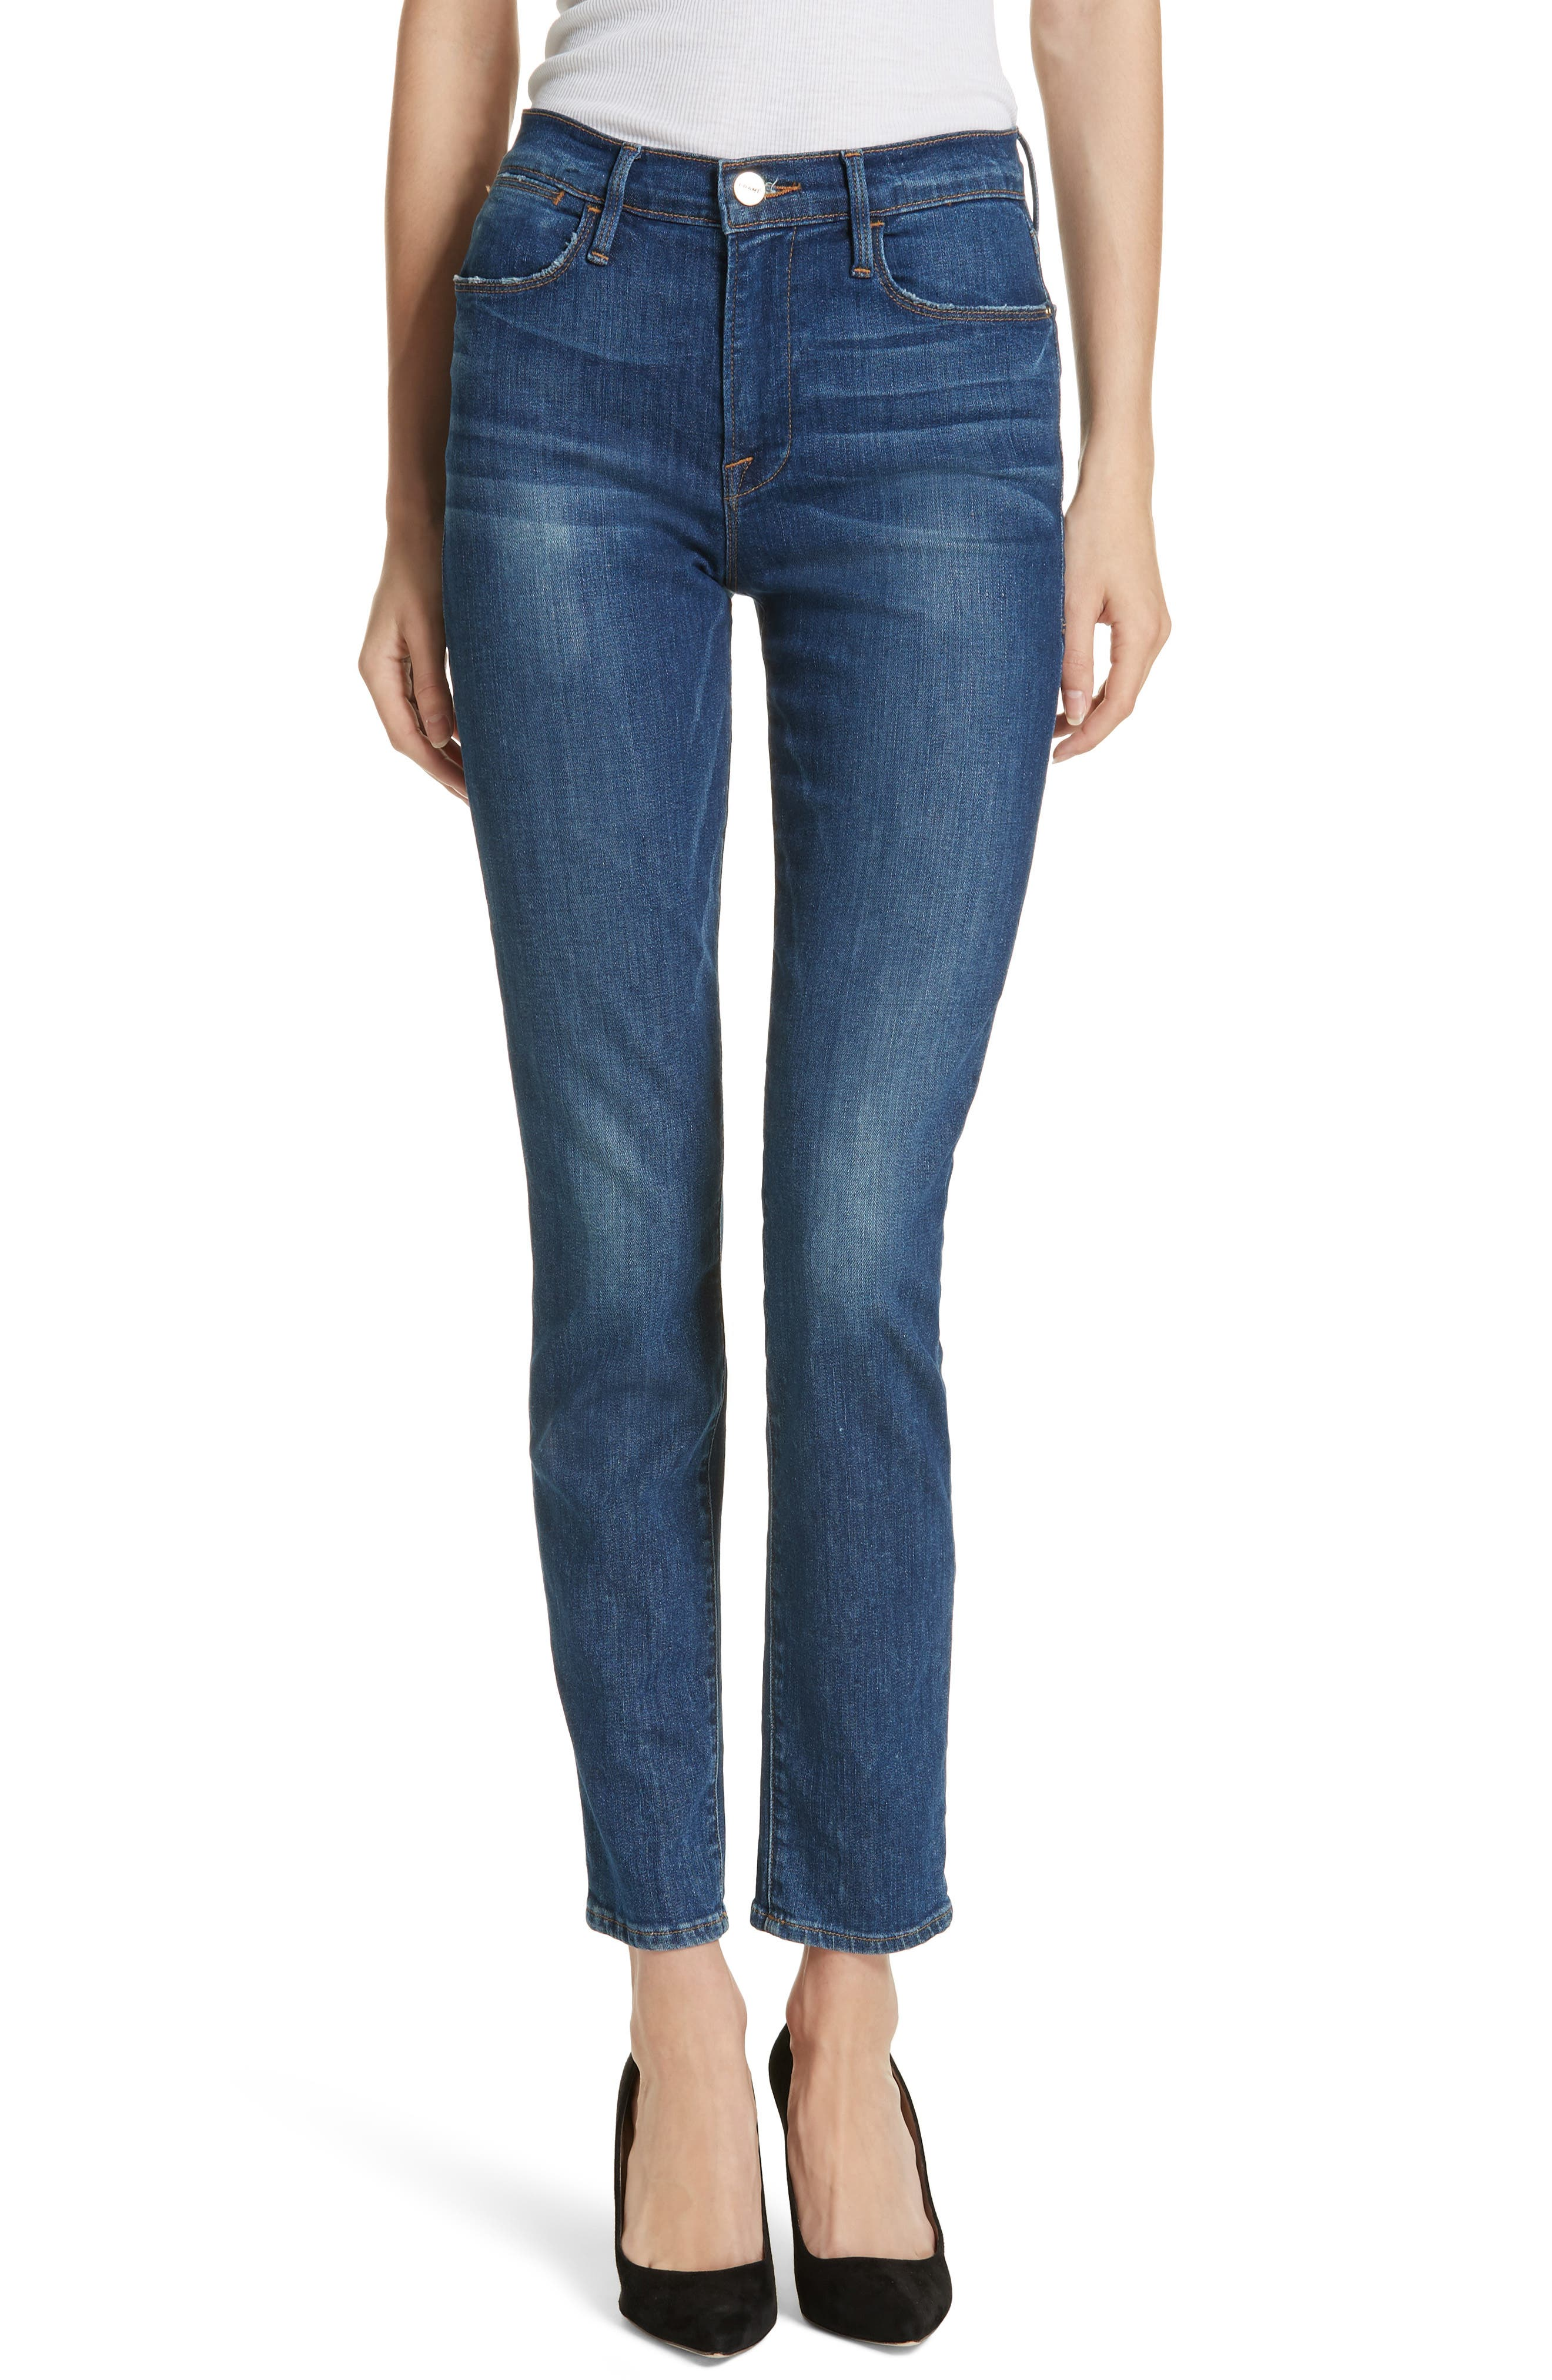 Women's Frame Le High Skinny Jeans